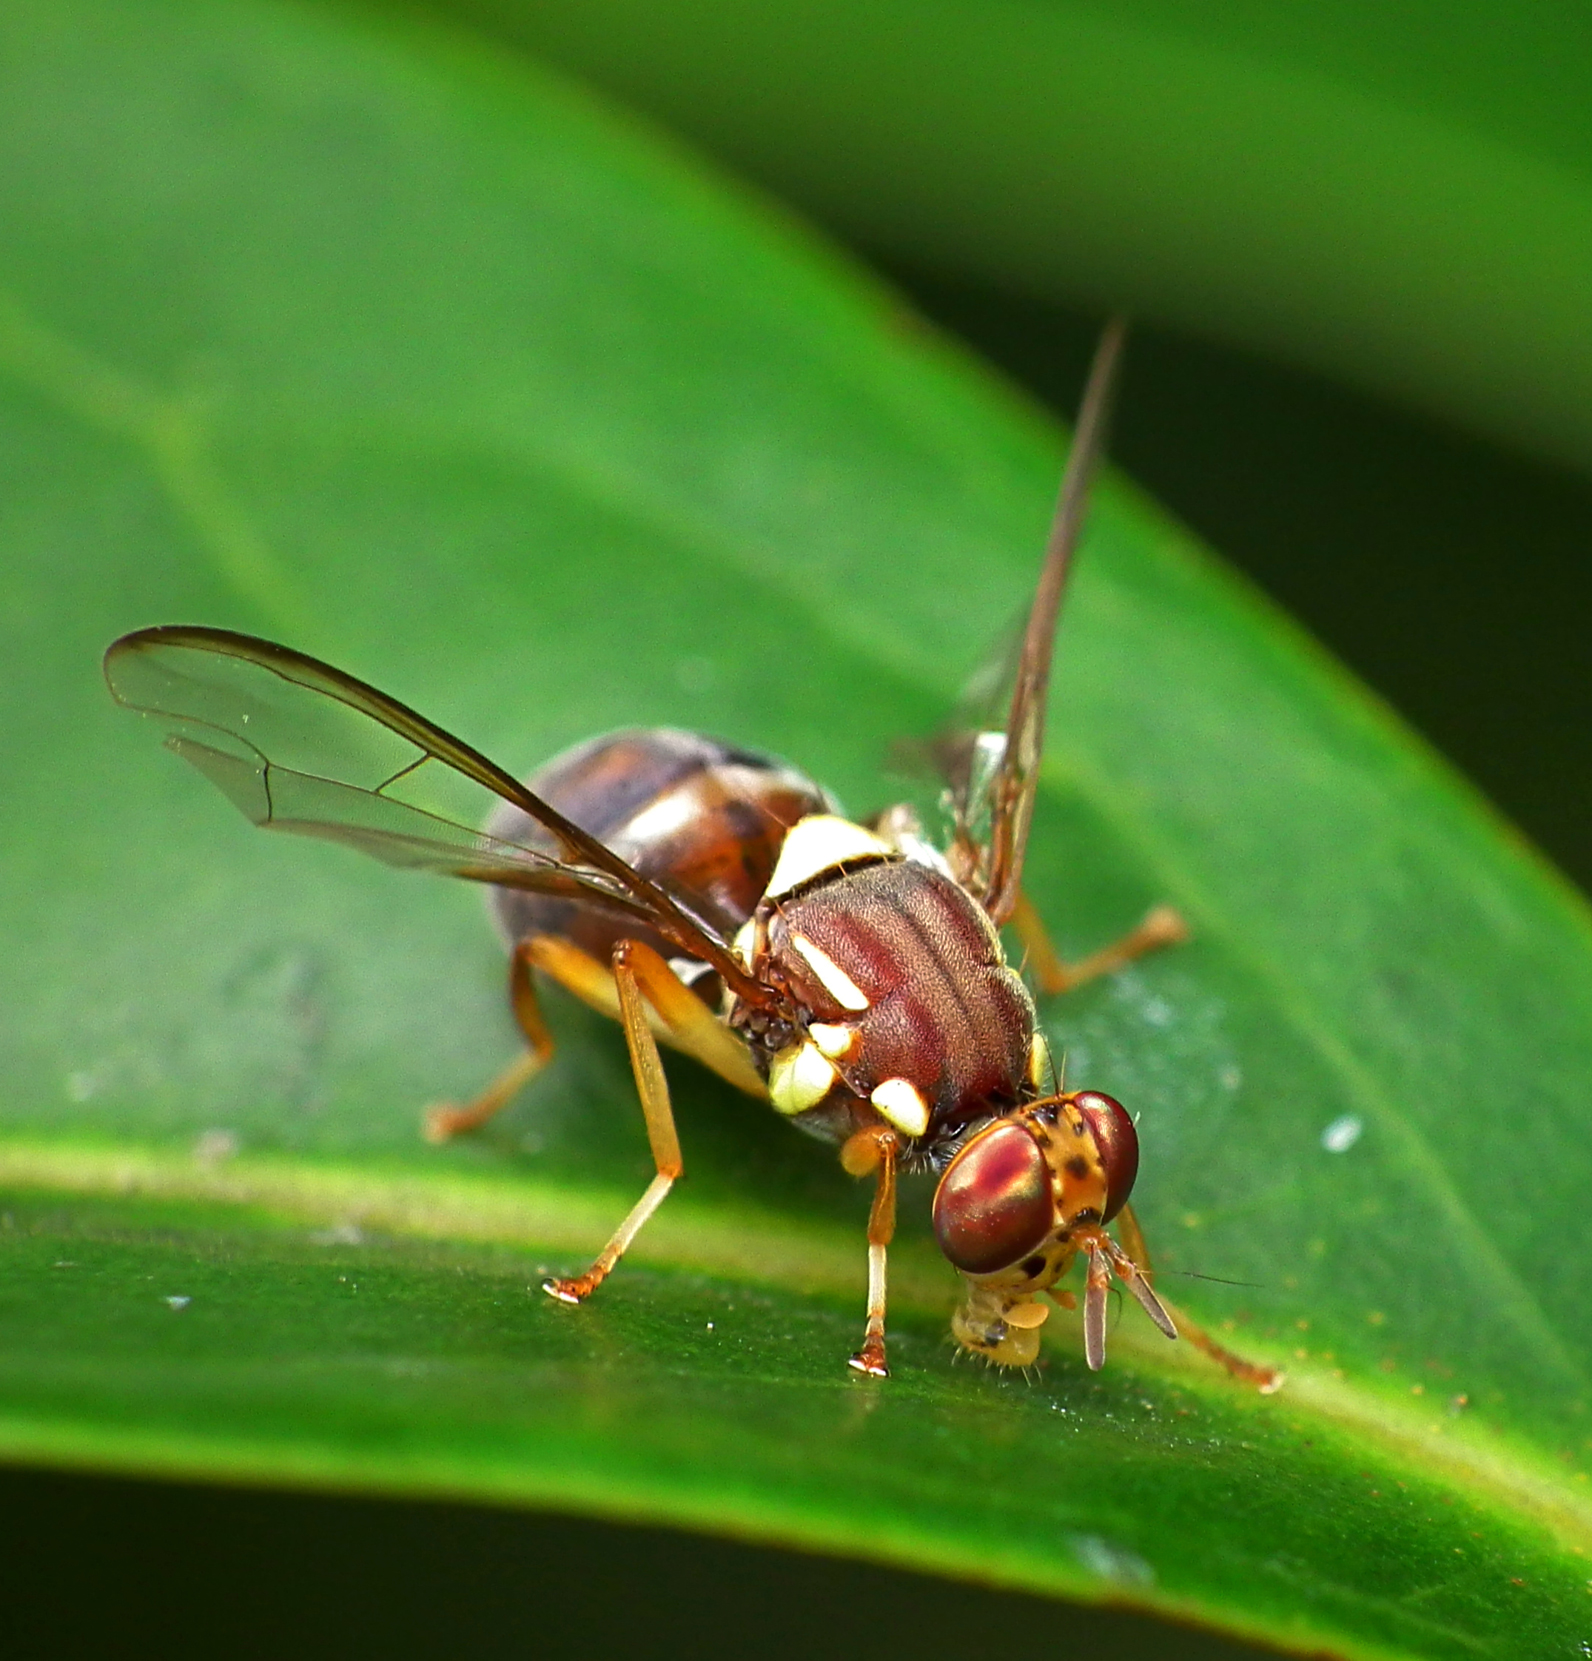 A Queensland fruit fly